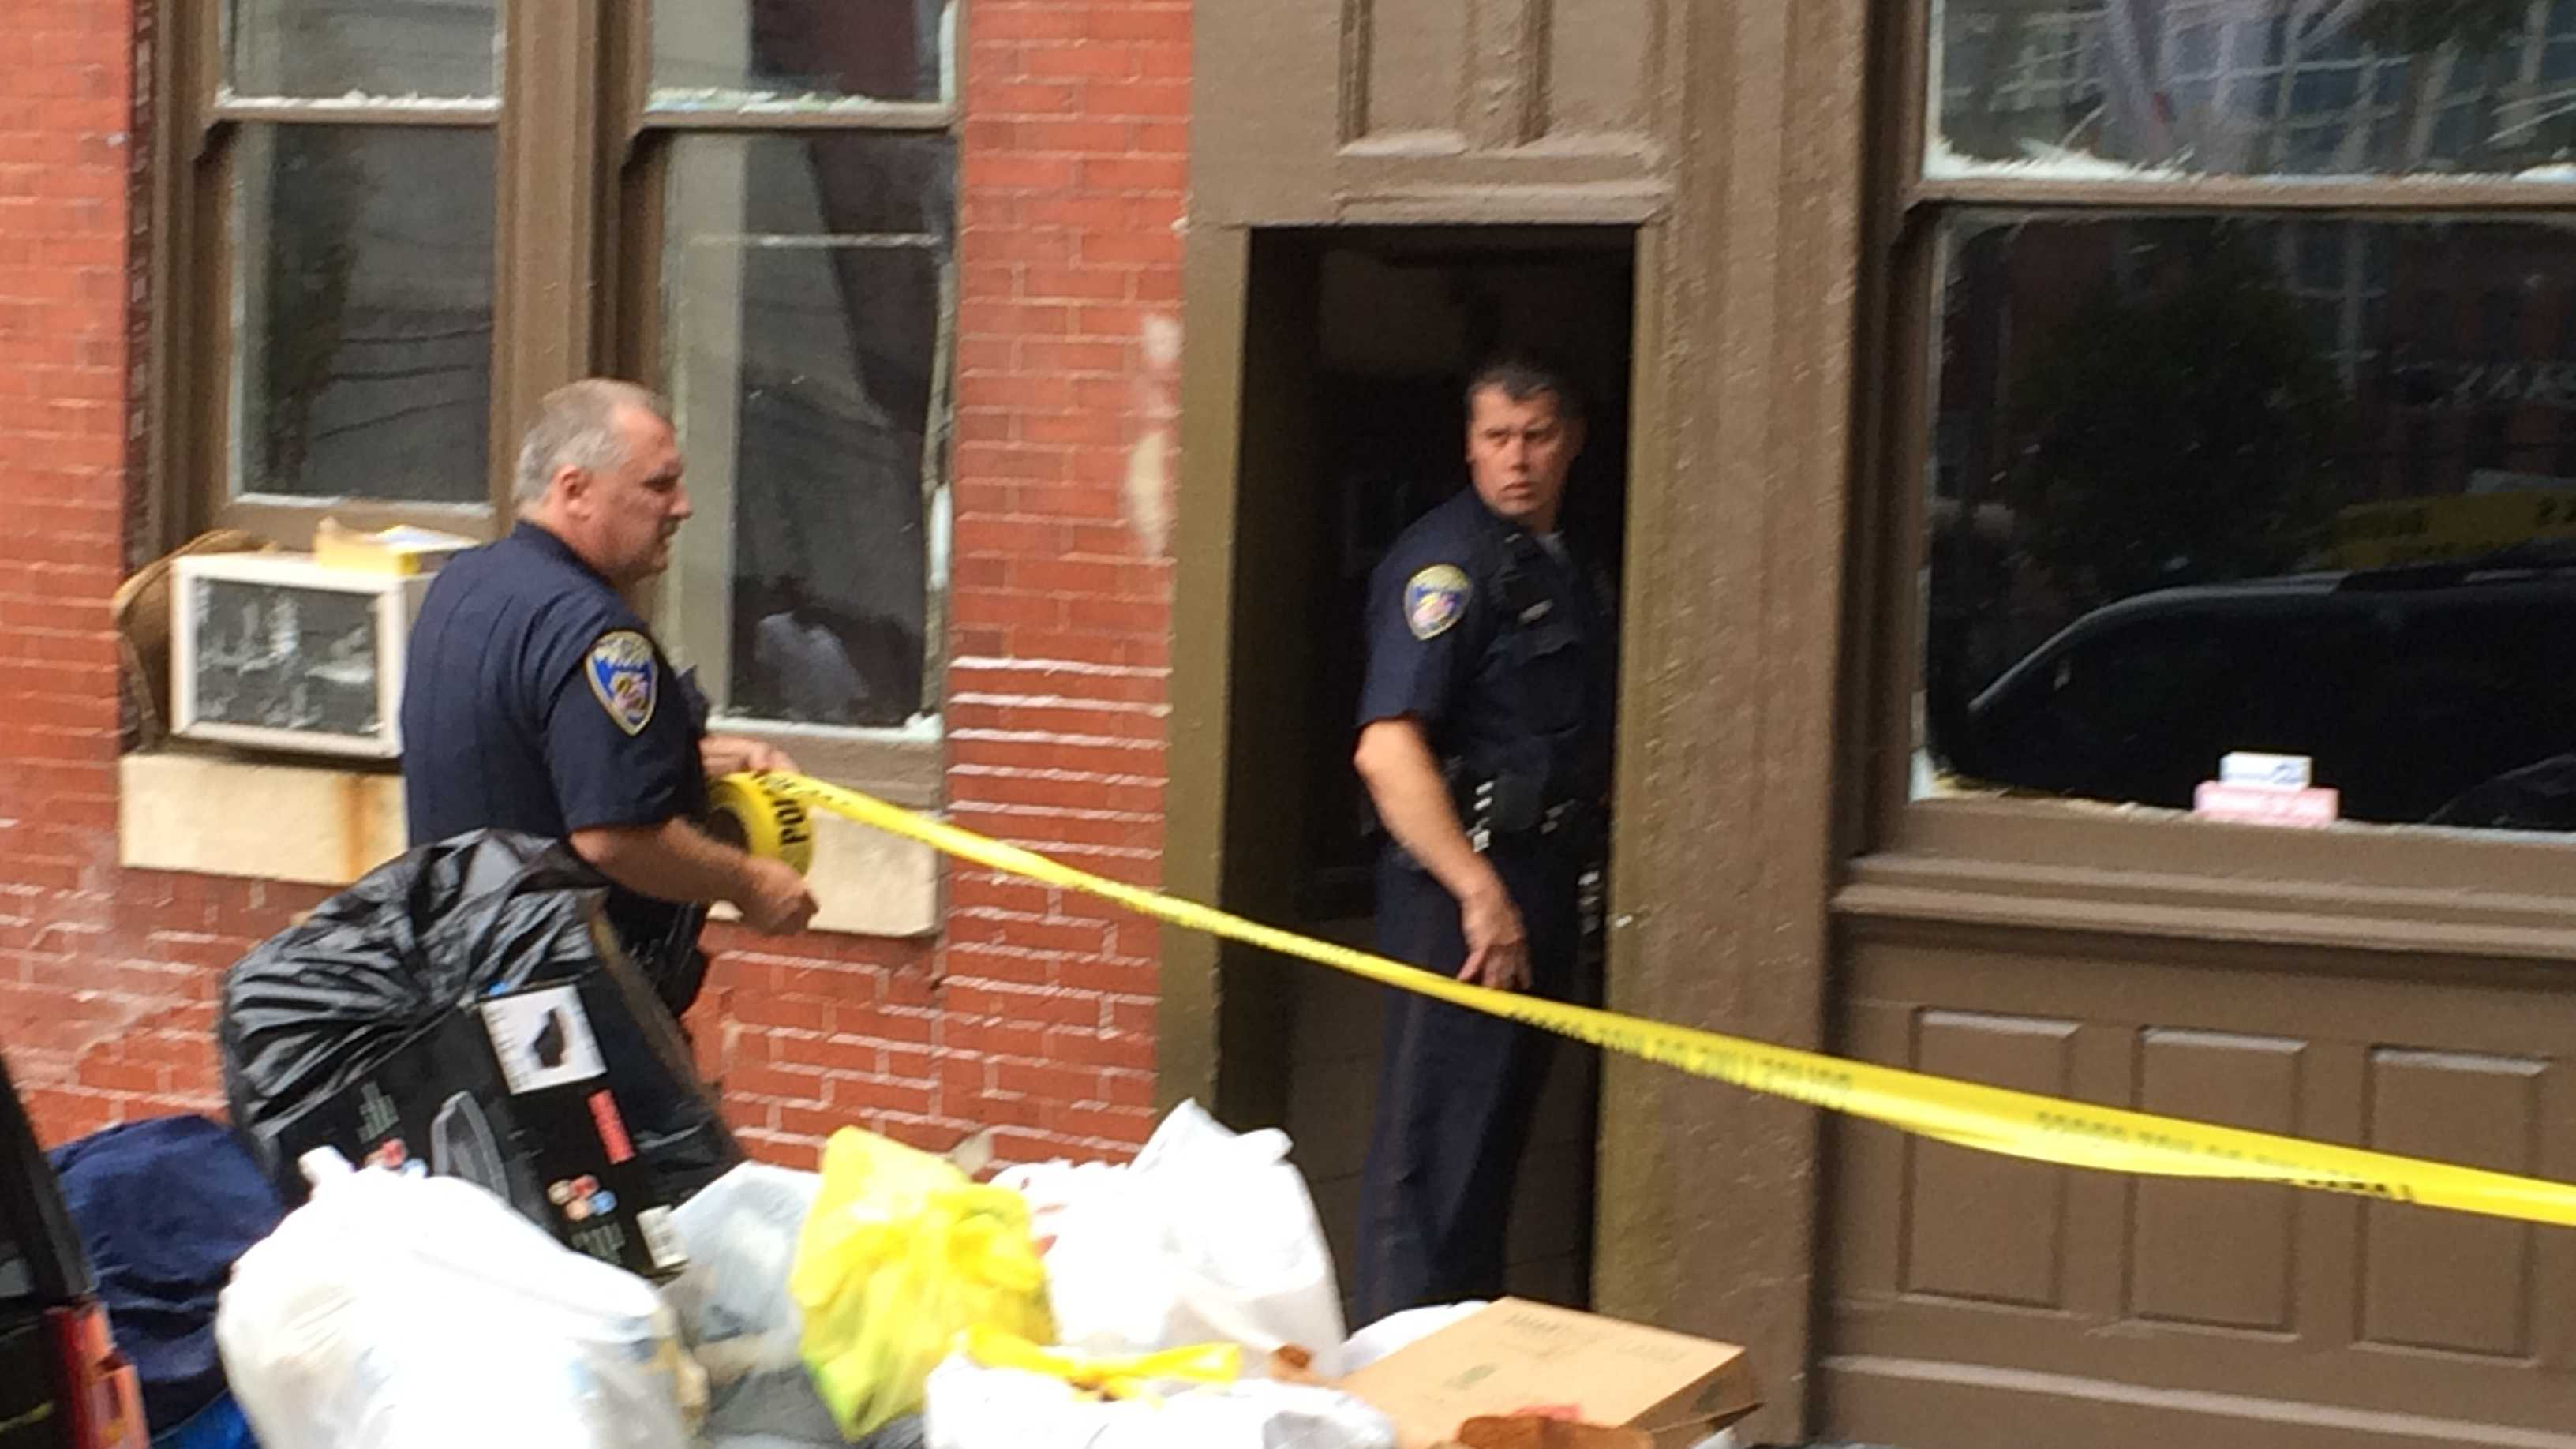 Police put up crime scene tape at the apartment where the woman was found.